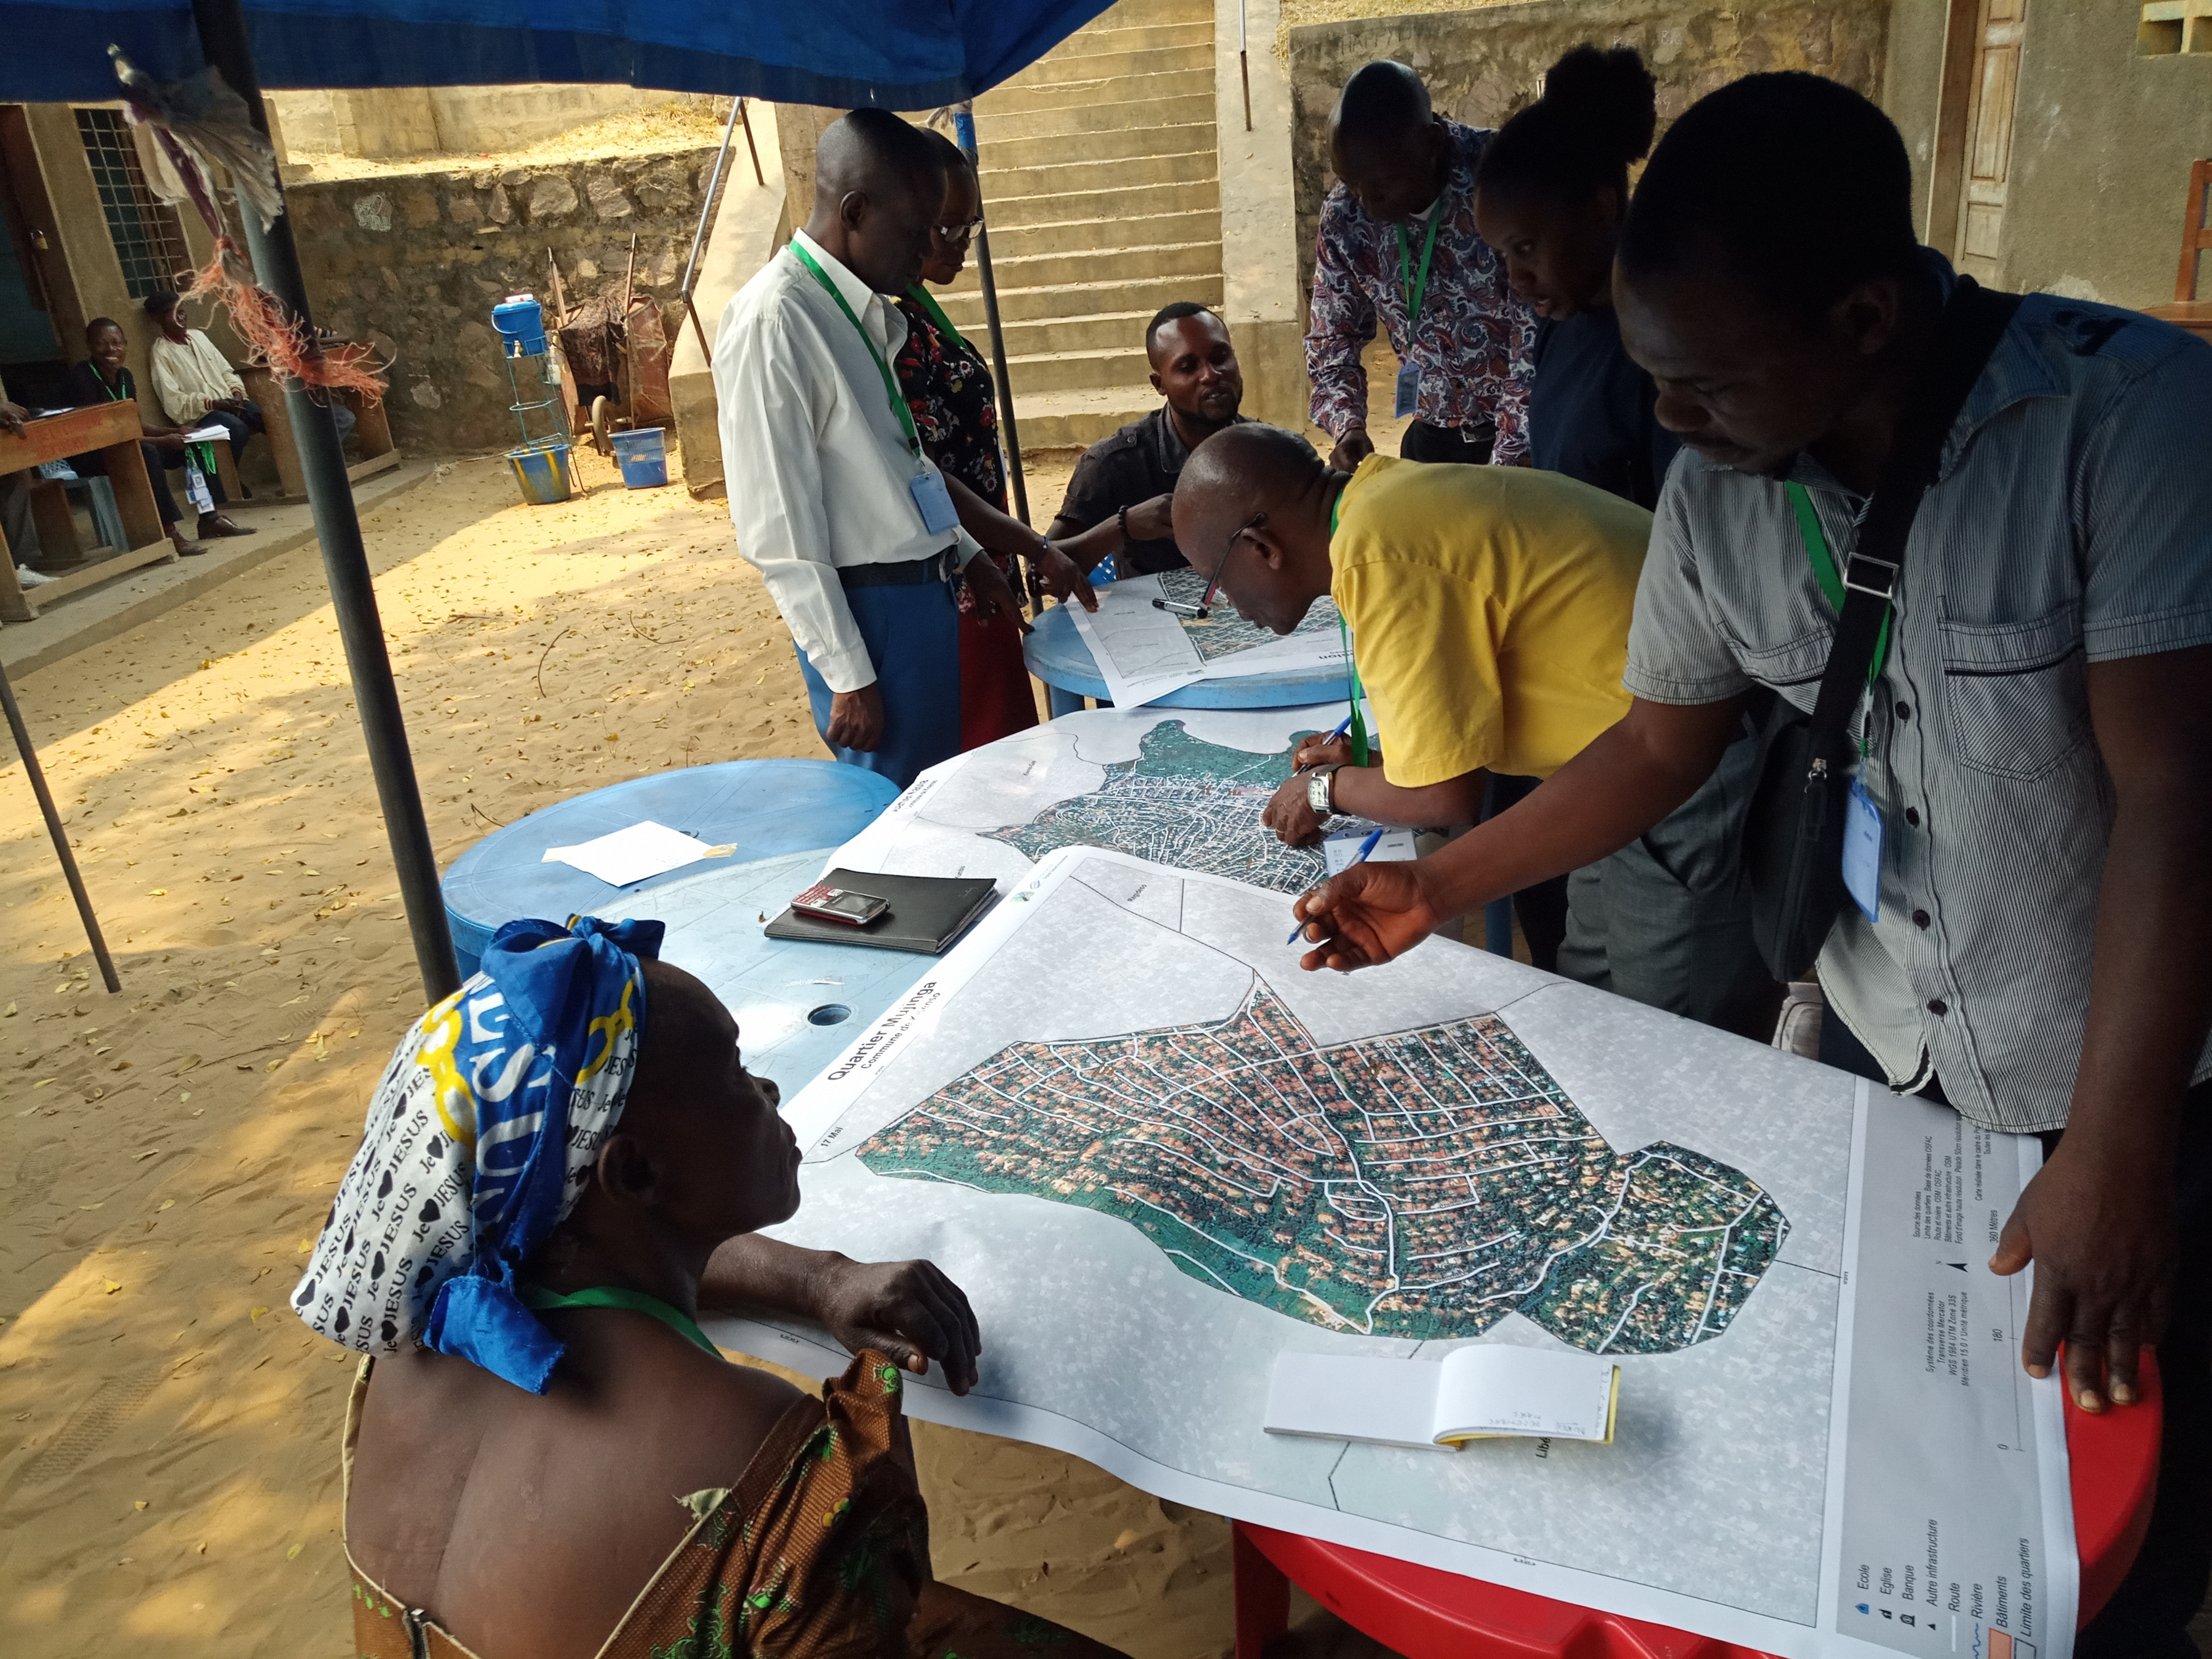 Members of the mapping community in Kinshasa plan the collection of field data for the Kisenso neighborhood. (courtesy of OpenDRI)